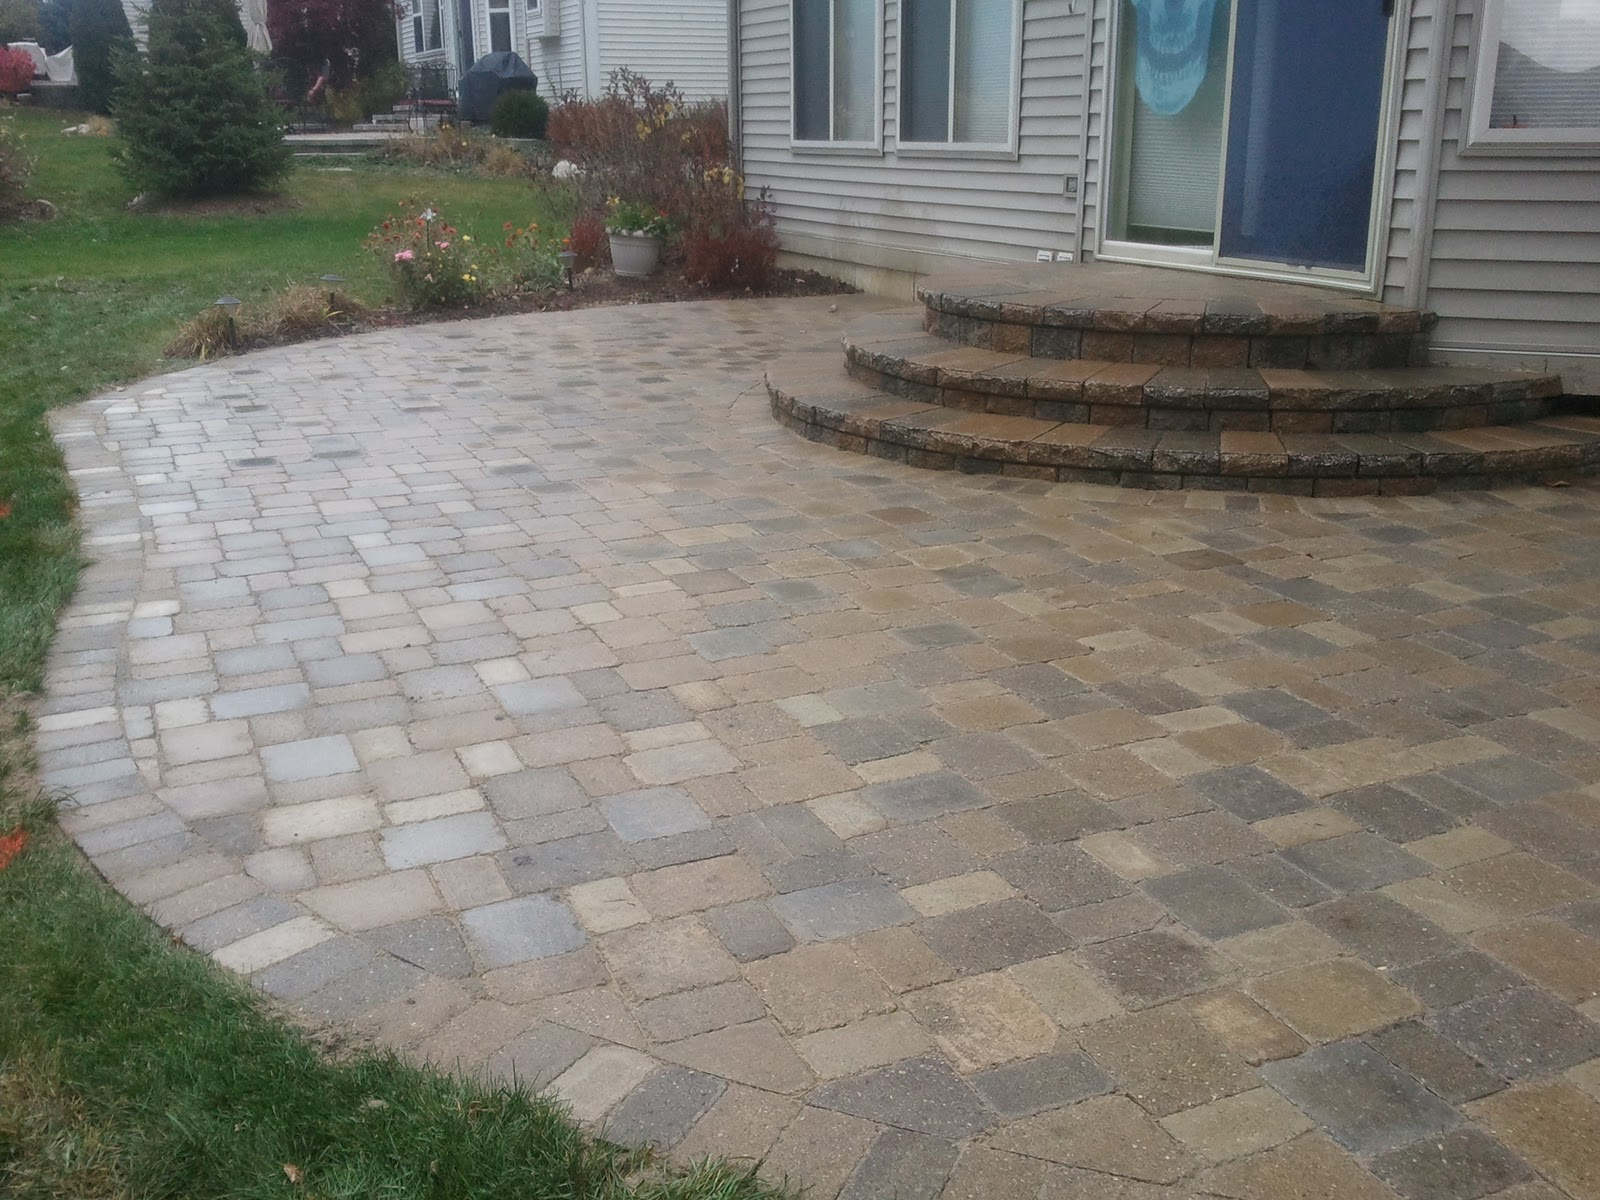 Patio stone pavers patio design ideas for Pictures of stone patios